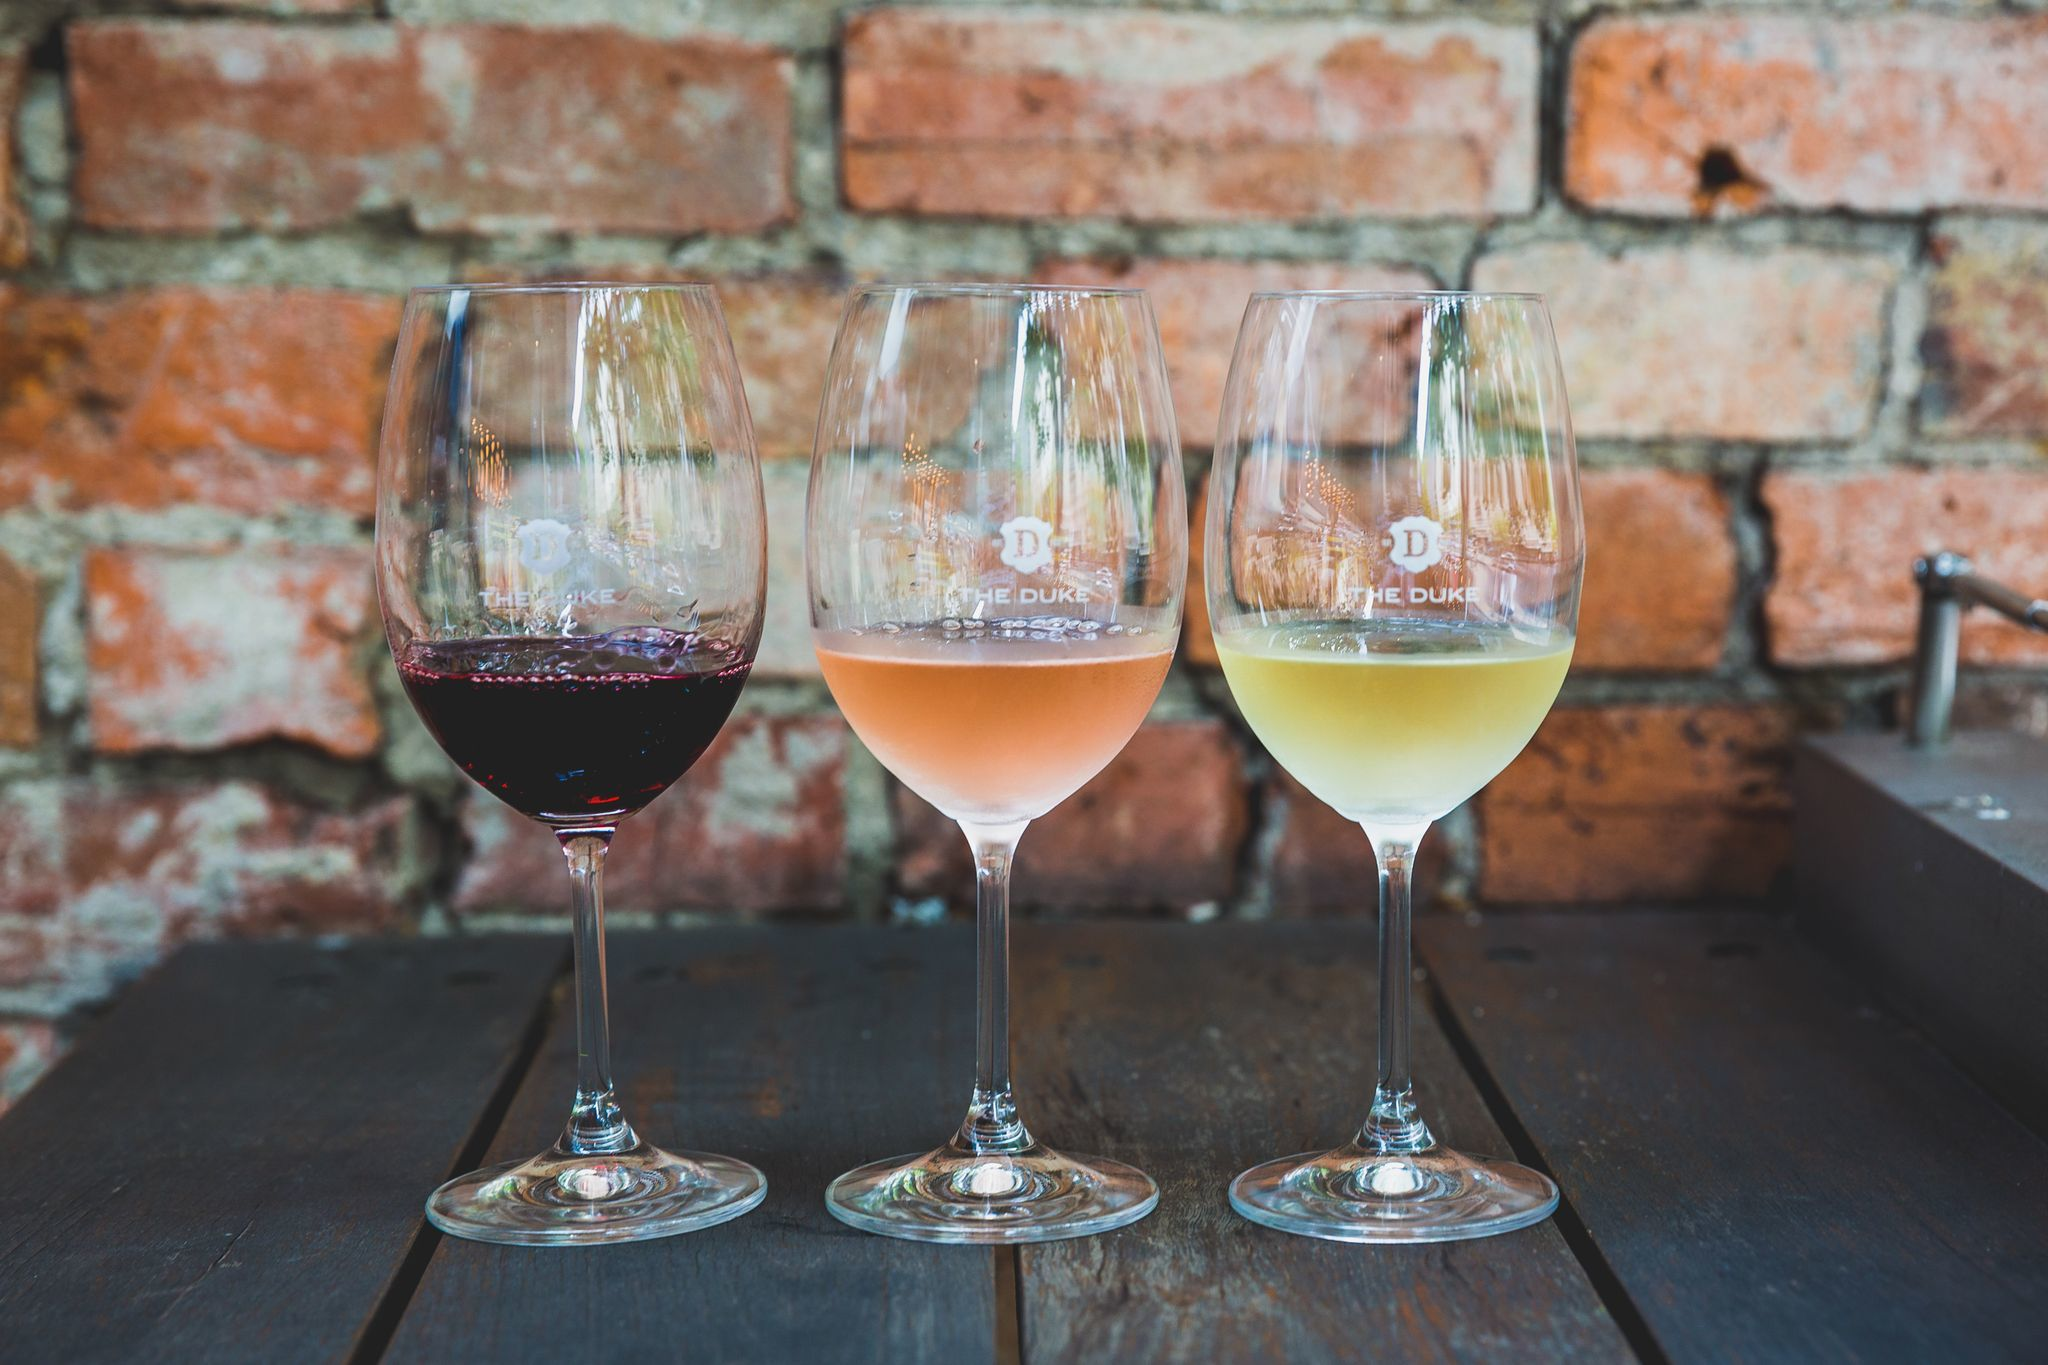 Win a Flight of Fancy wine tasting for you and six friends at the Duke